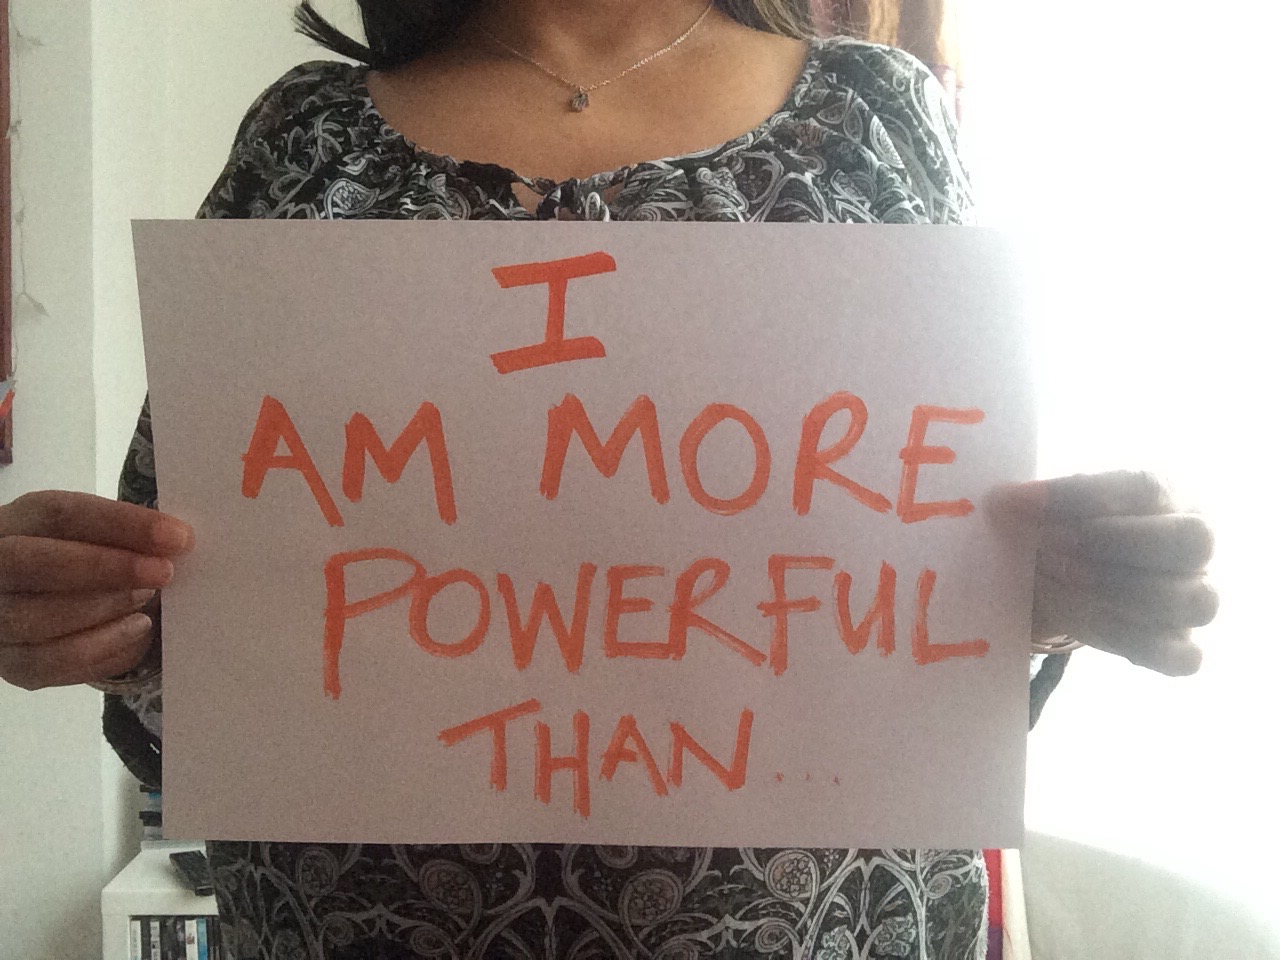 I am more powerful than